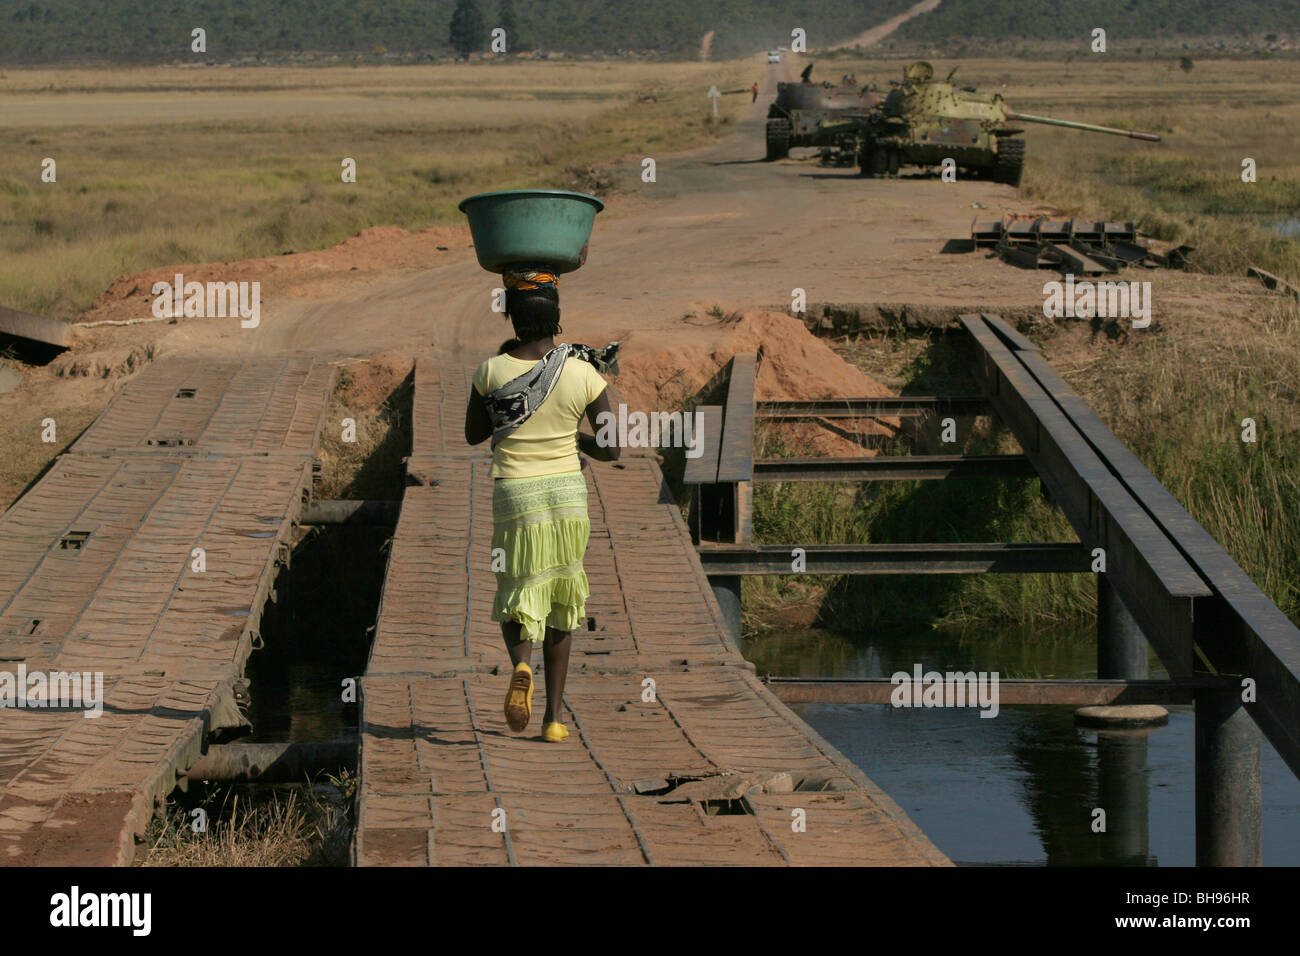 Angolan woman carrying basket on her head walks towards two tanks which were abandoned at Longa, Angola, Africa. - Stock Image